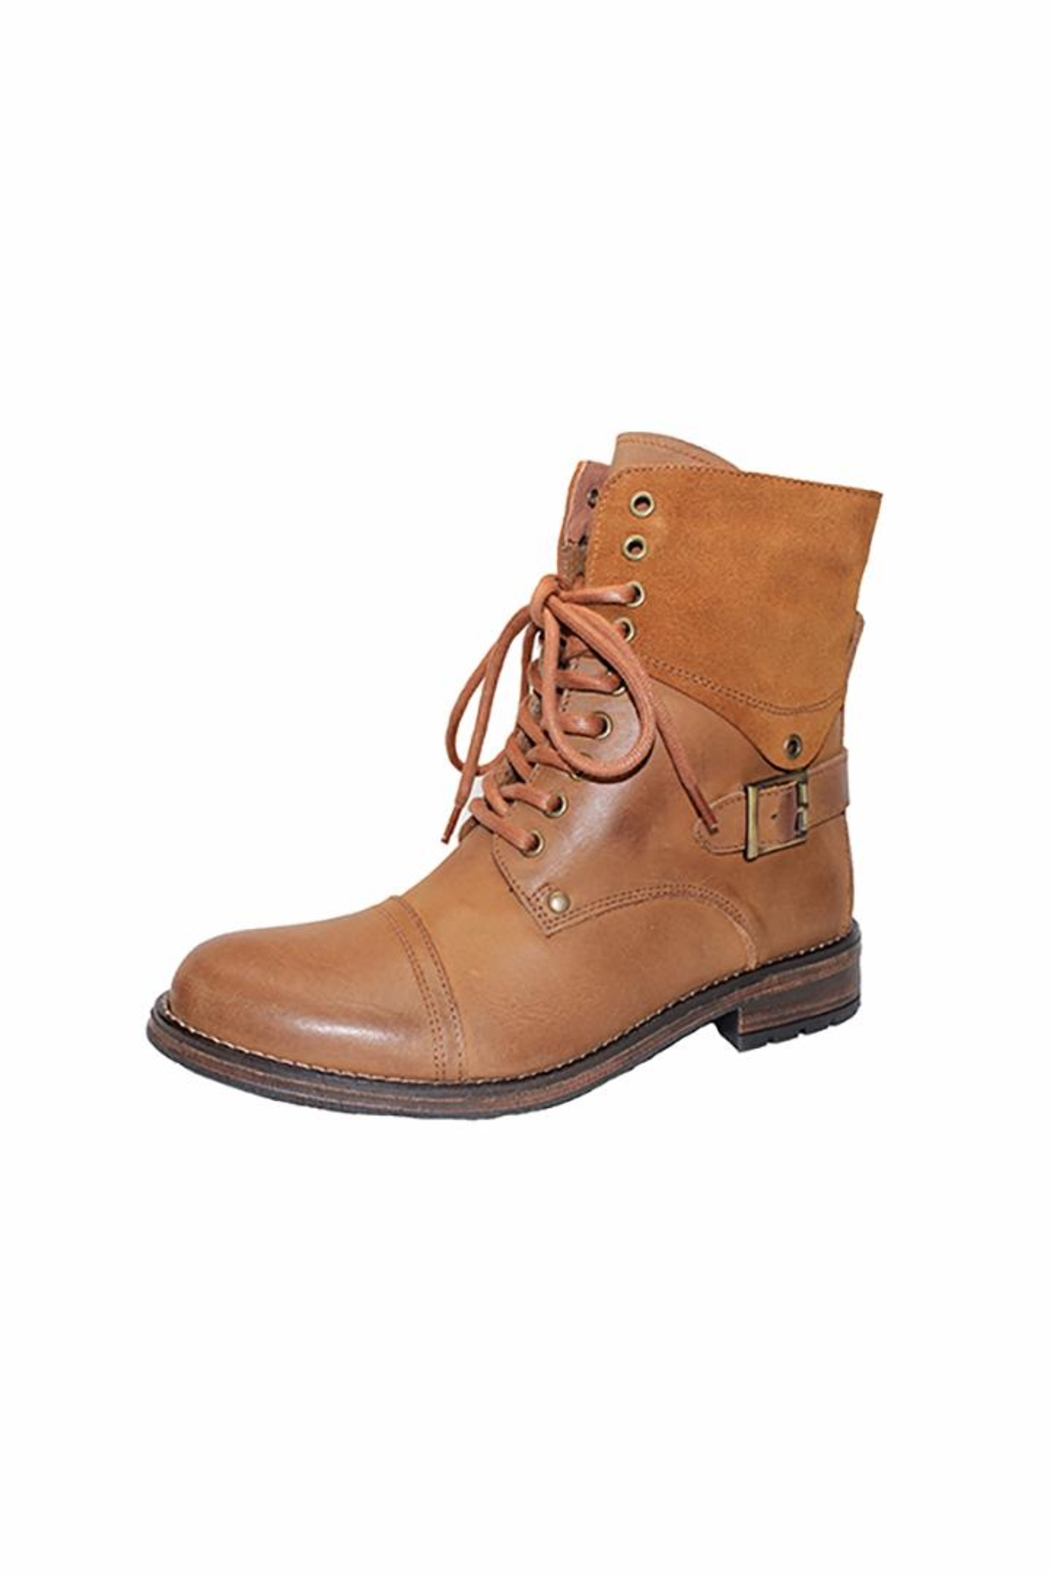 Eric Michael Juniper Combat-Inspired Boot - Front Cropped Image